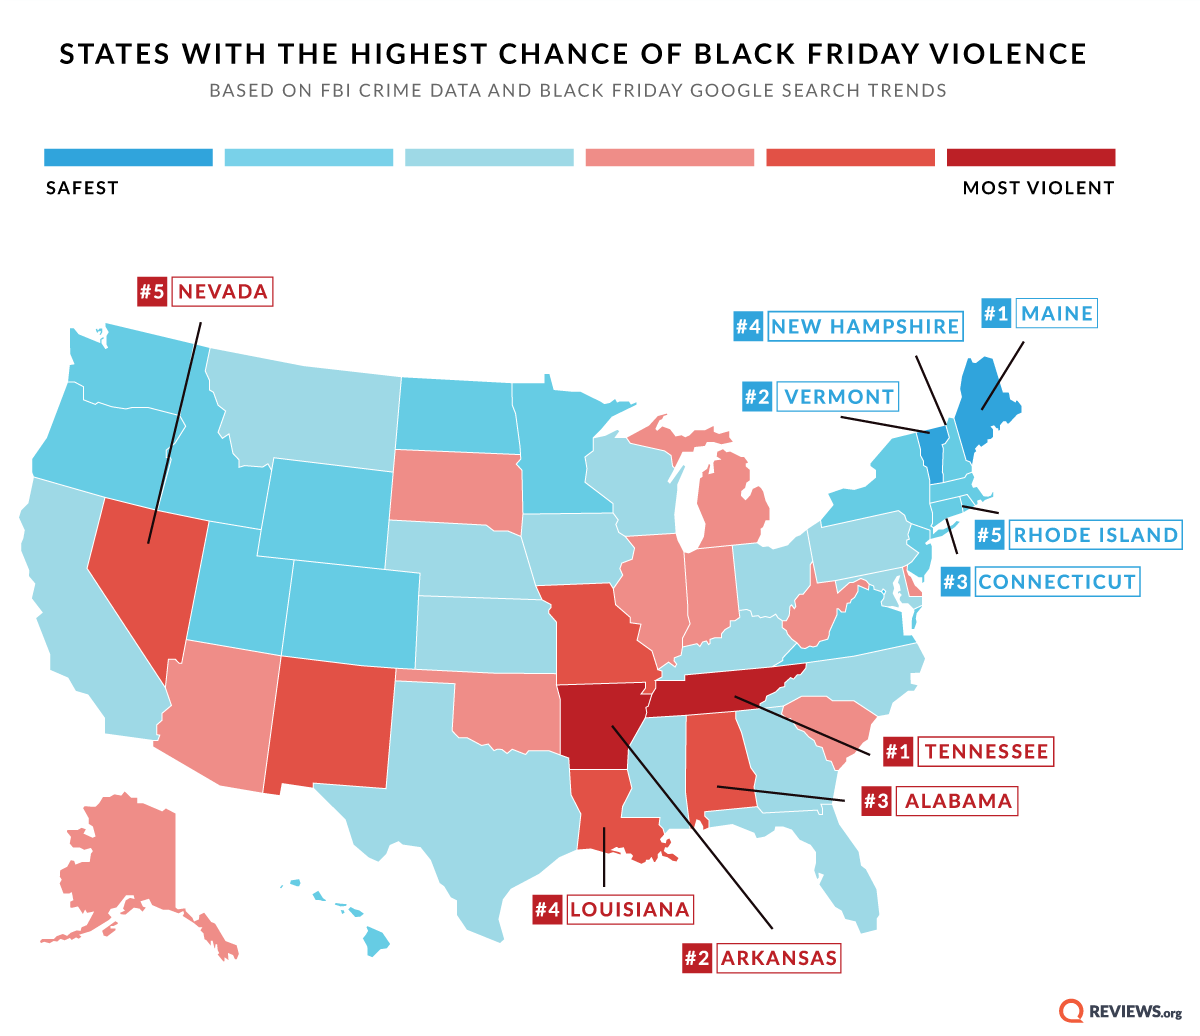 These States Are At High Risk For Black Friday Violence